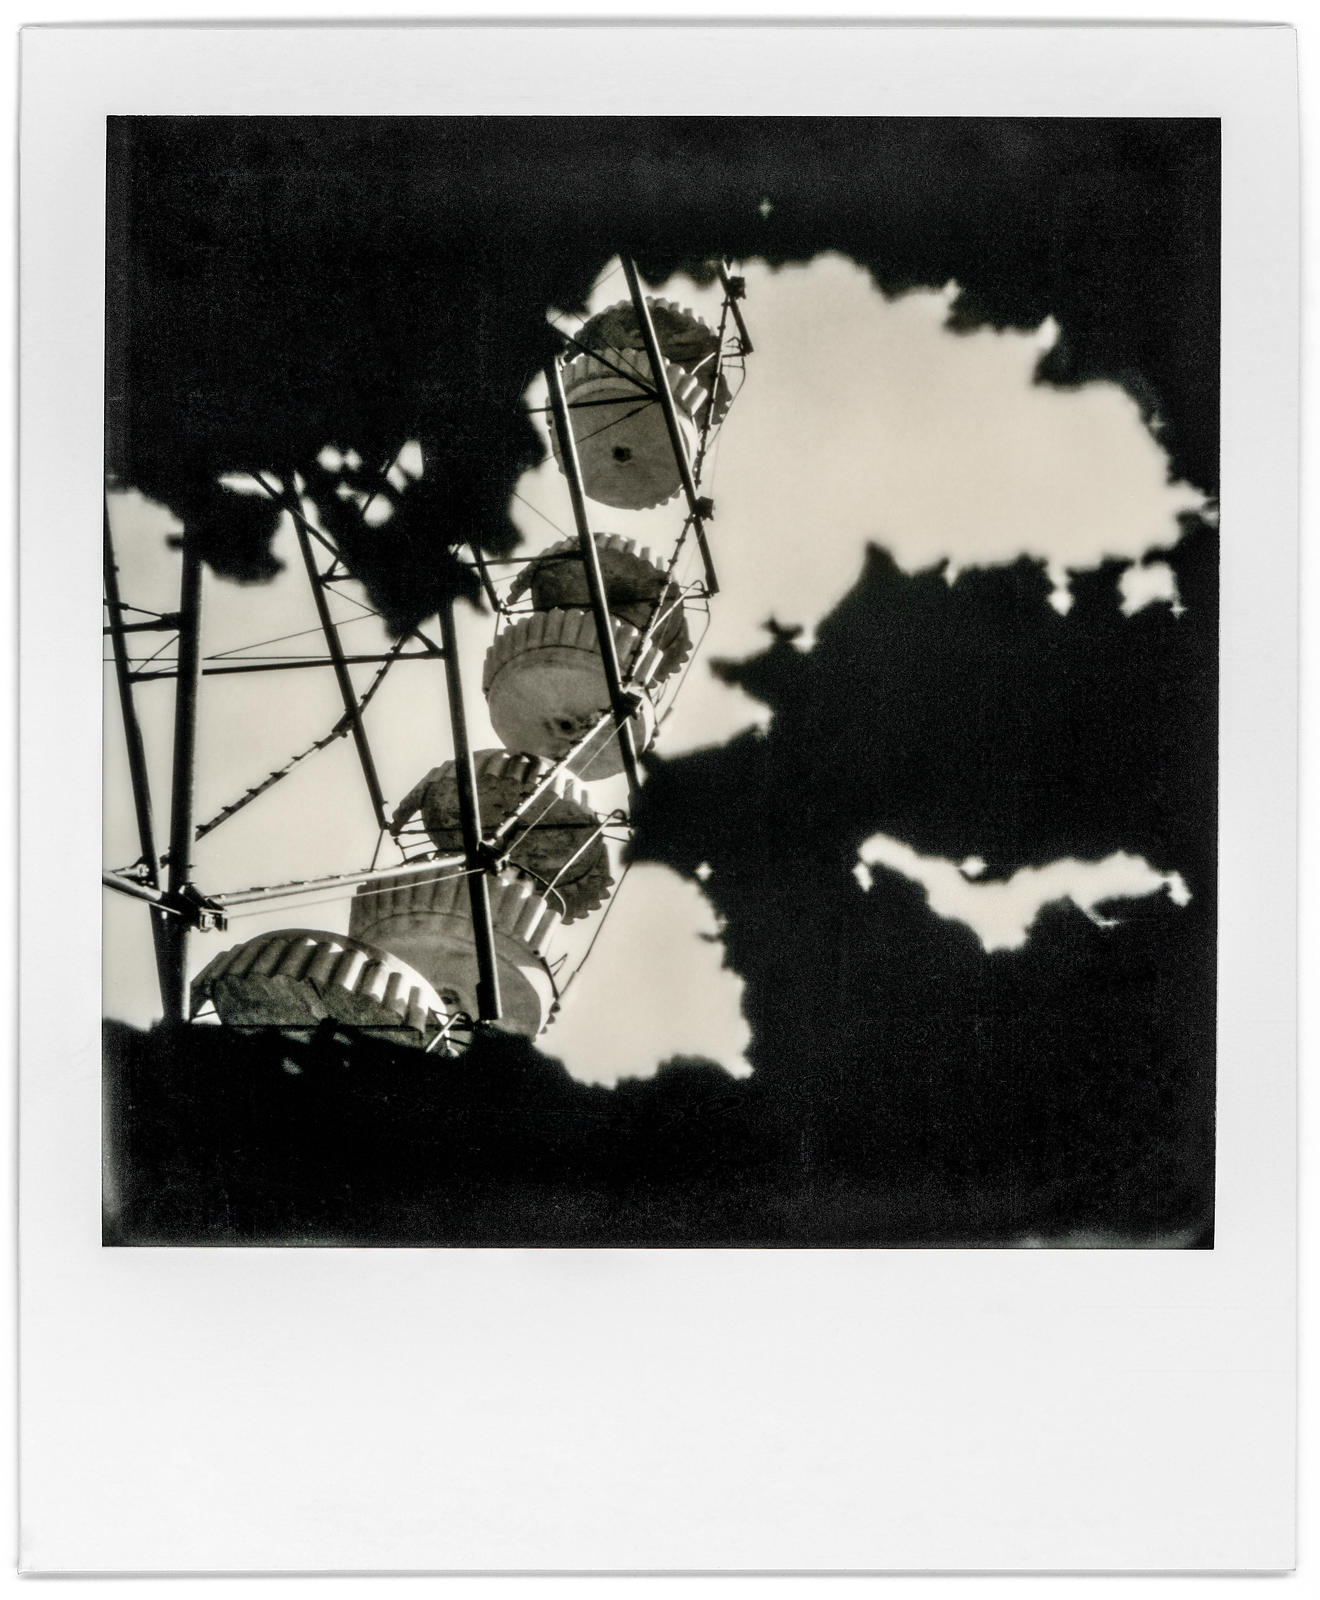 photo-polaroid-tchernobyl-chernobyl-33